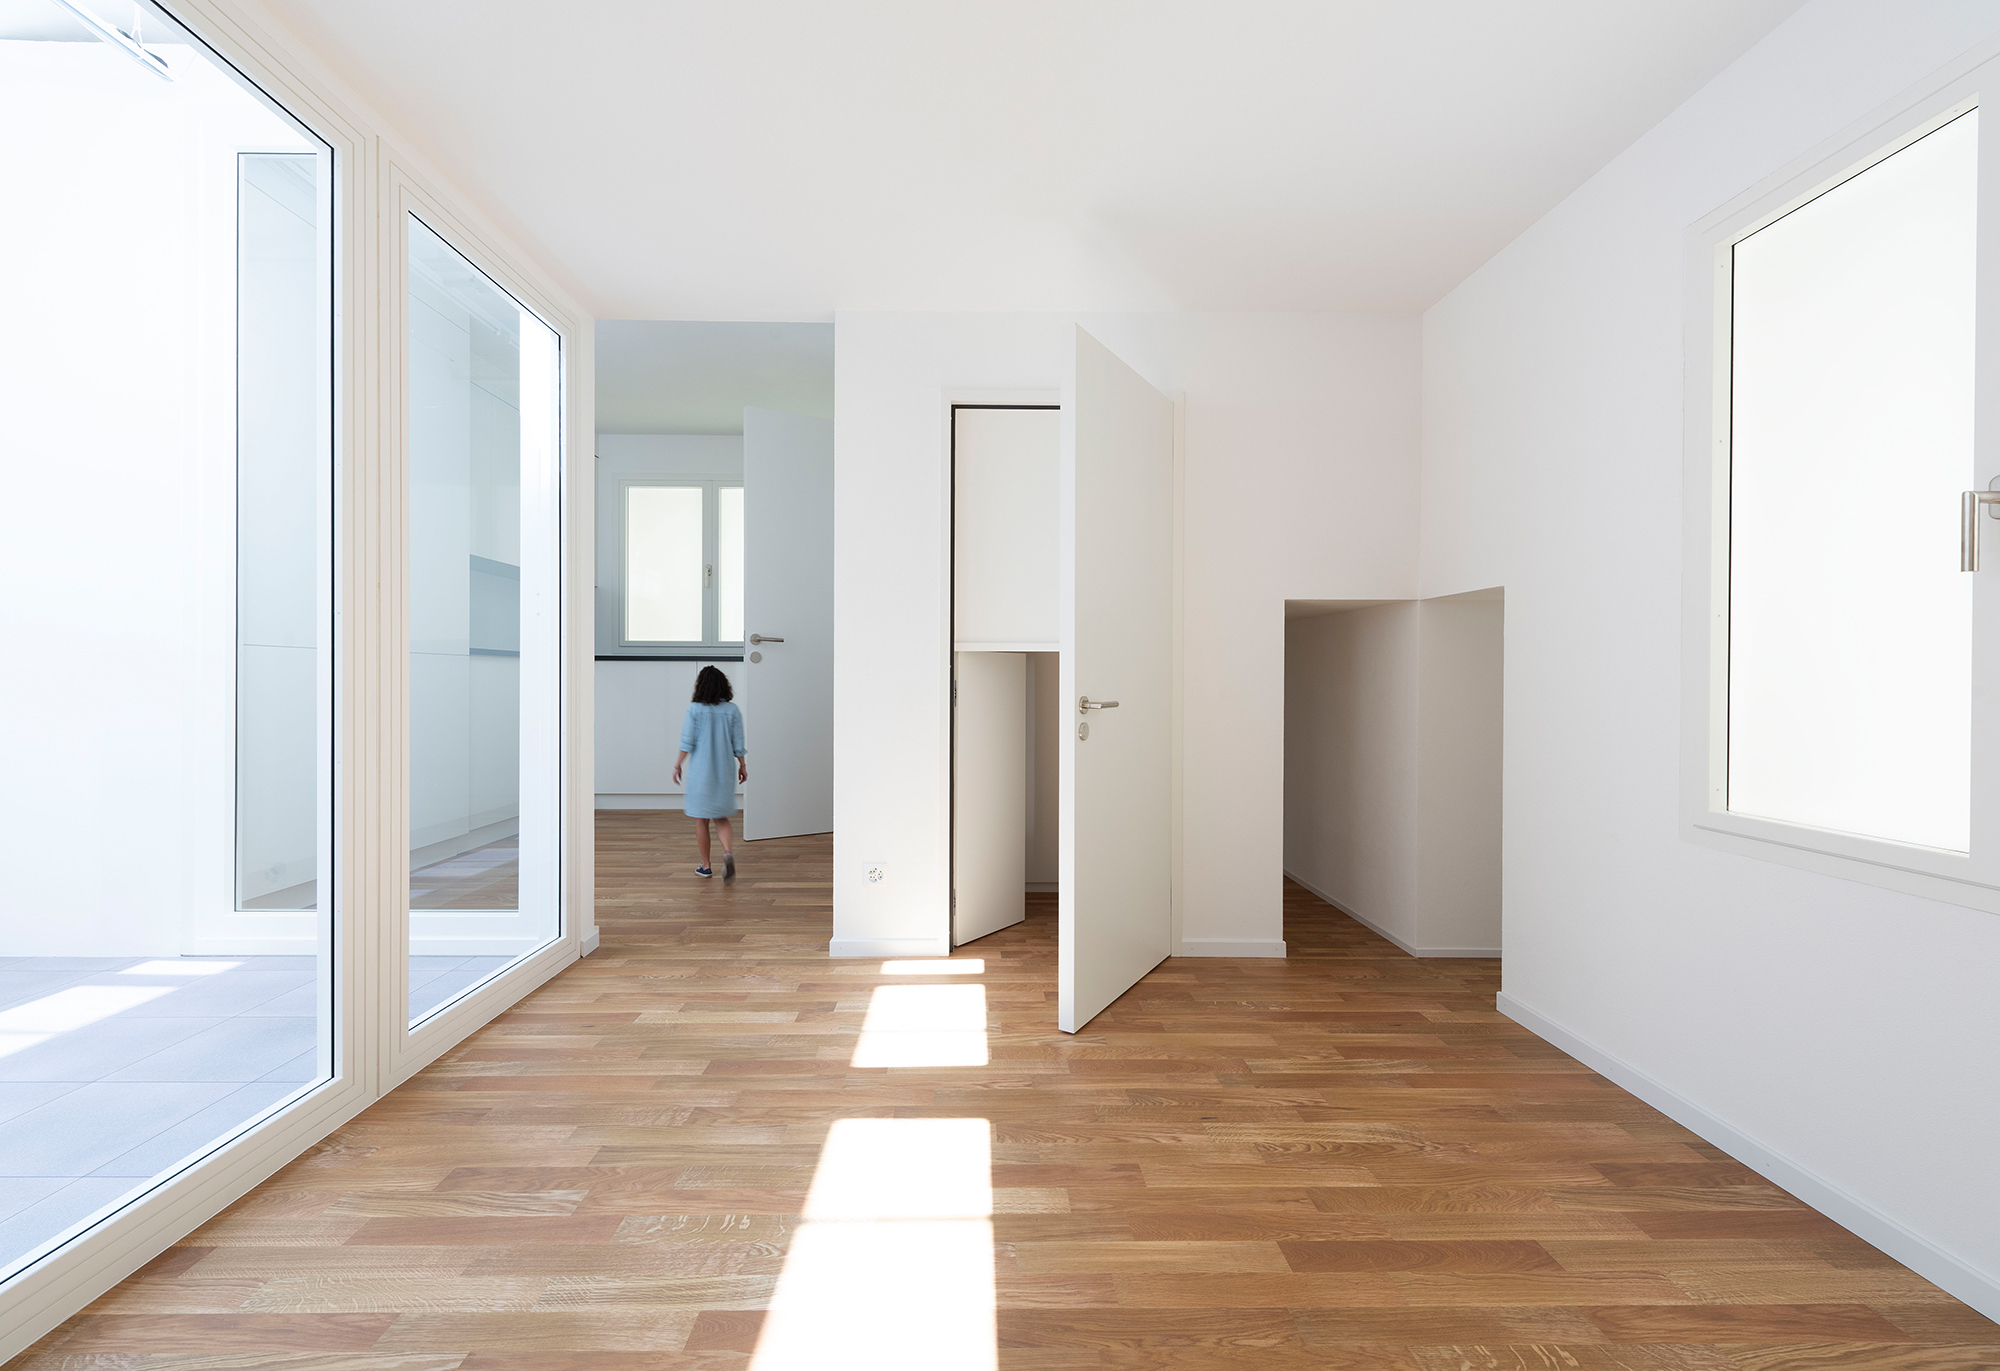 Interior view of the project with disproportionately sized doors, rooms and windows. A woman walks around an oversized room.